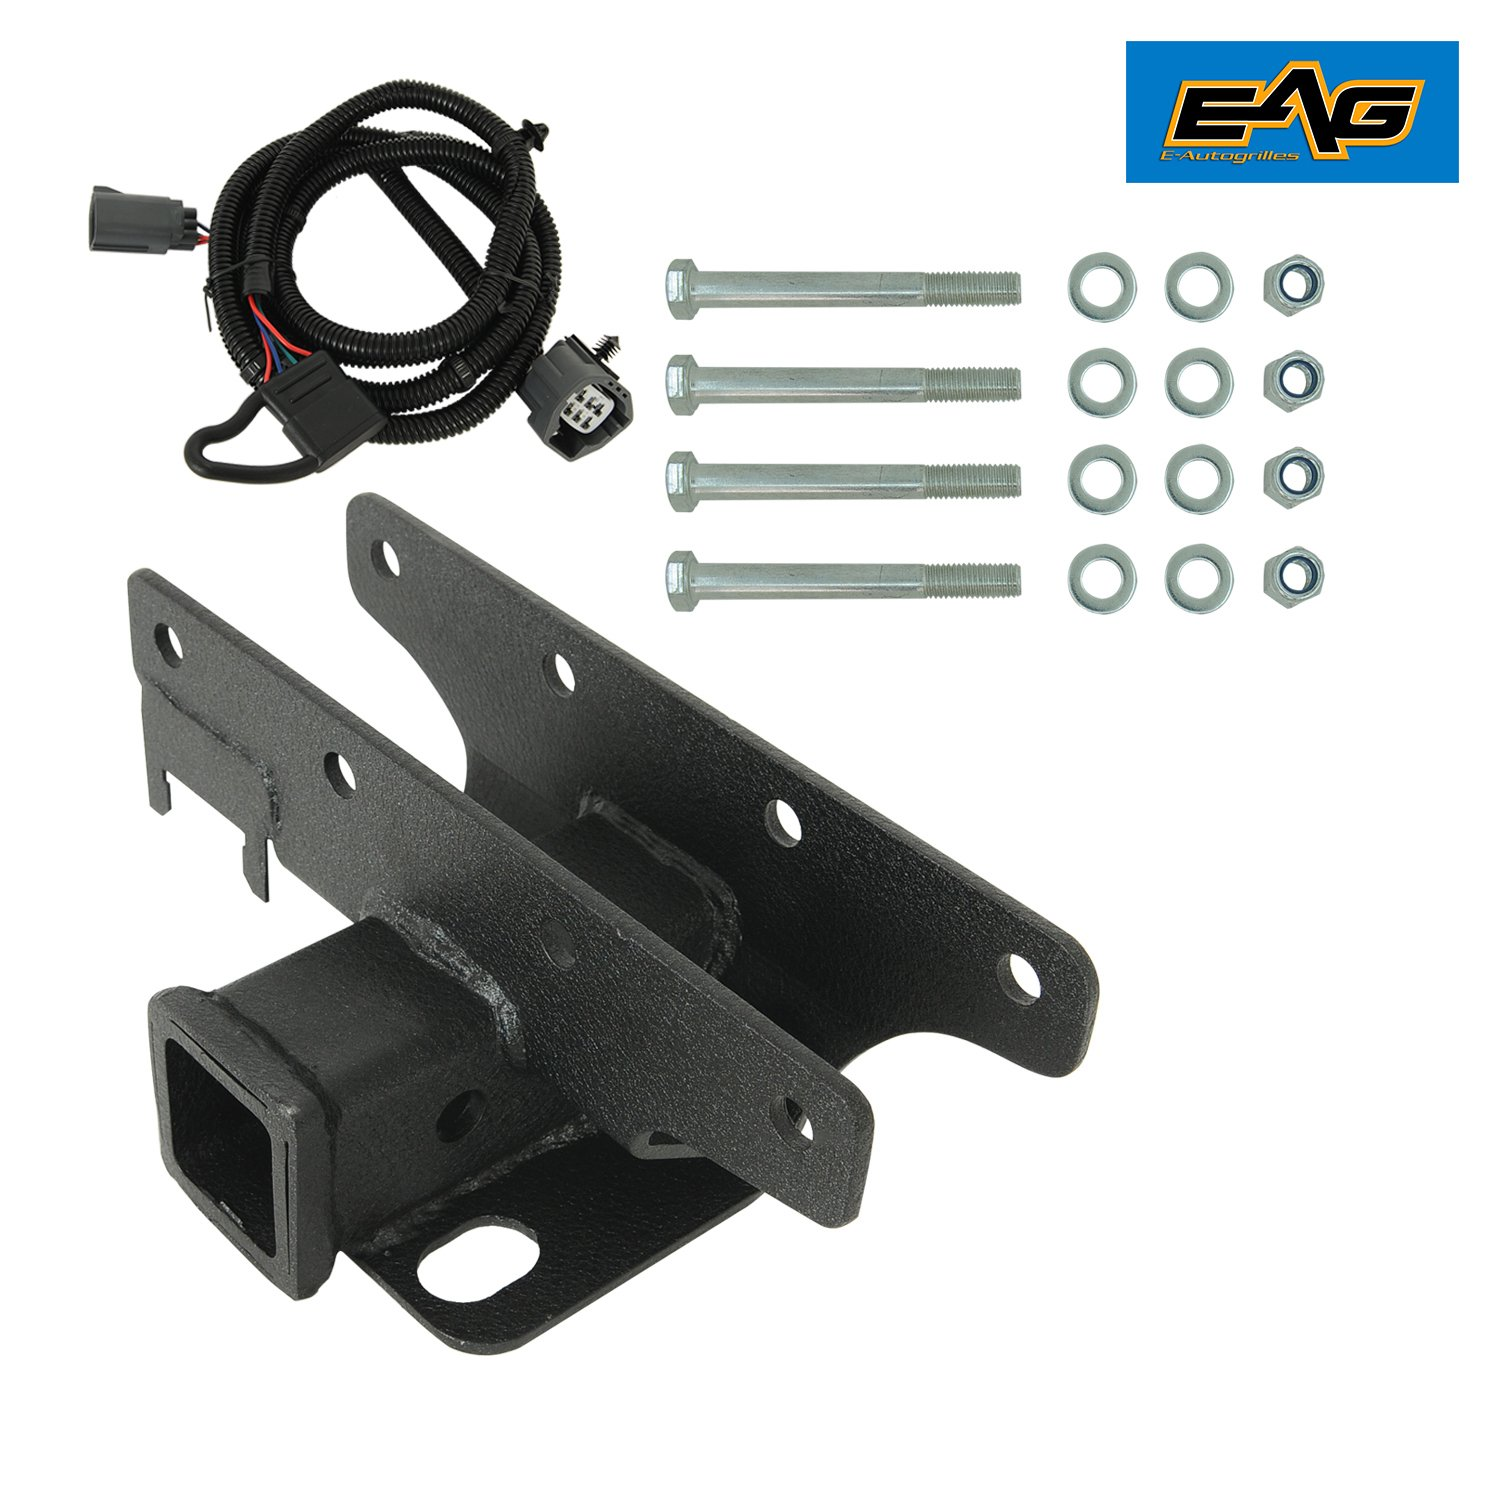 EAG 07-18 Jeep Wrangler JK Receiver Hitch (Class III 2') & Tailer Tow Wiring Harness